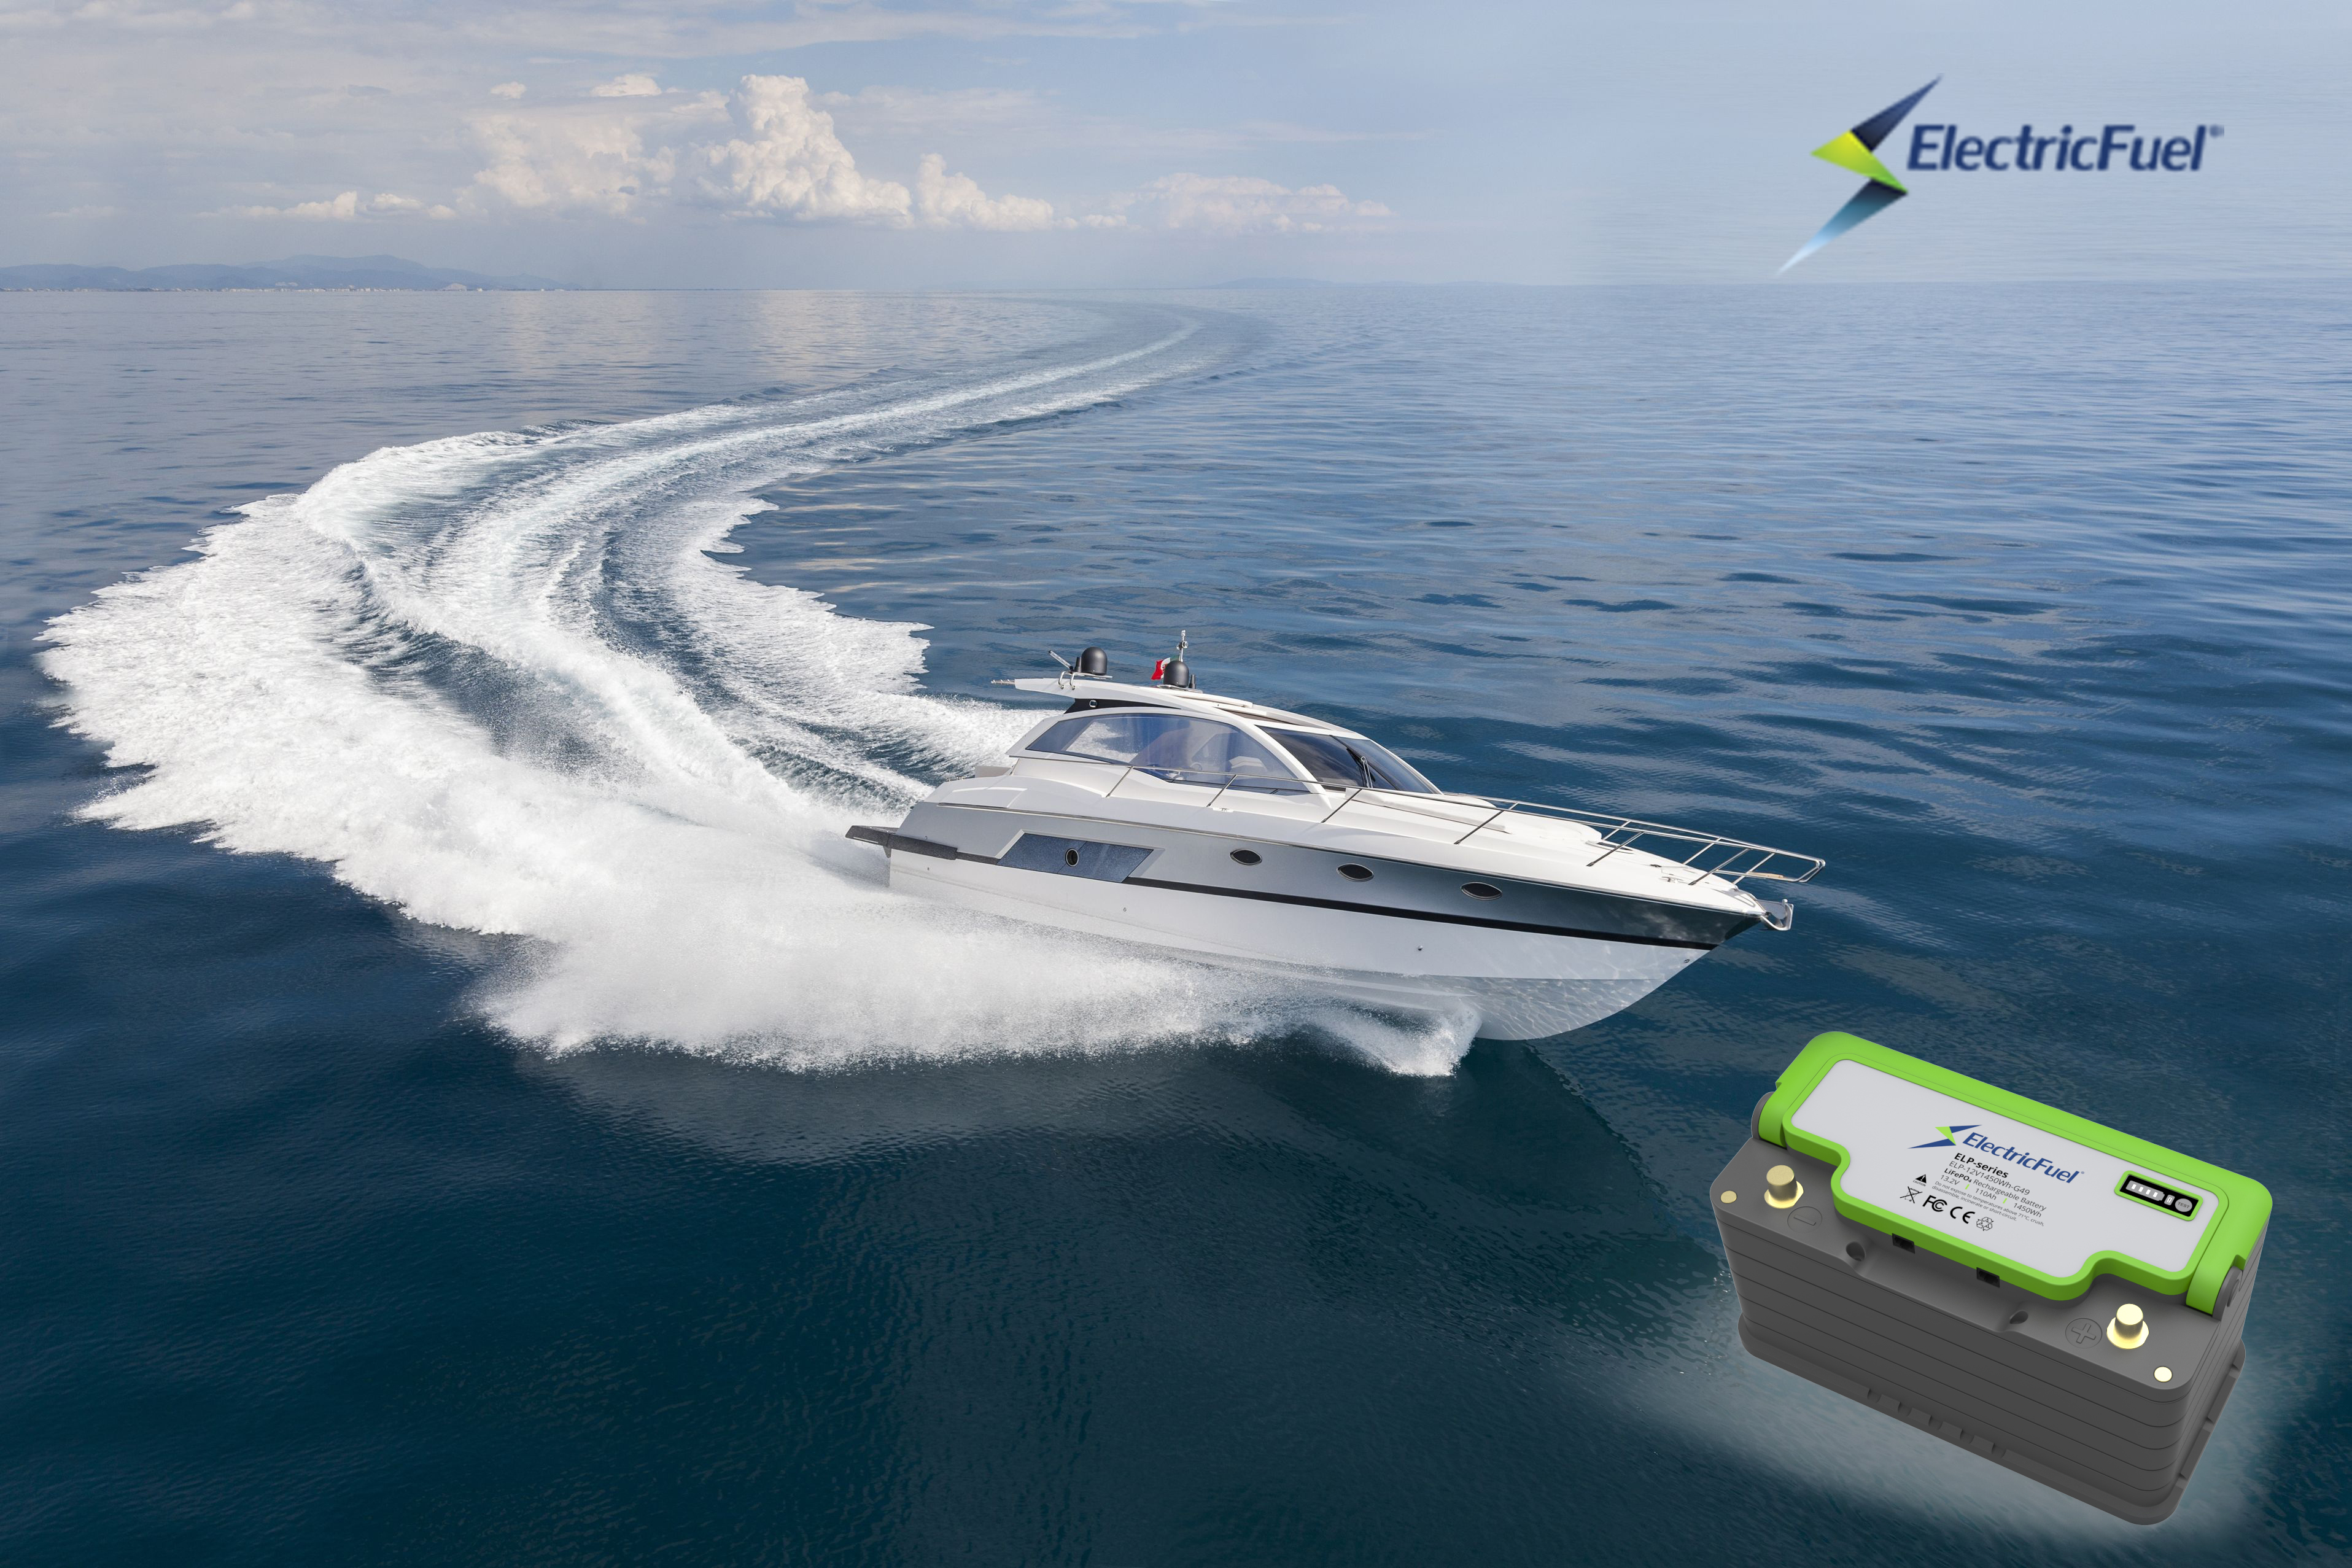 Battery Technology Will Change the Marine Market – Electric Fuel